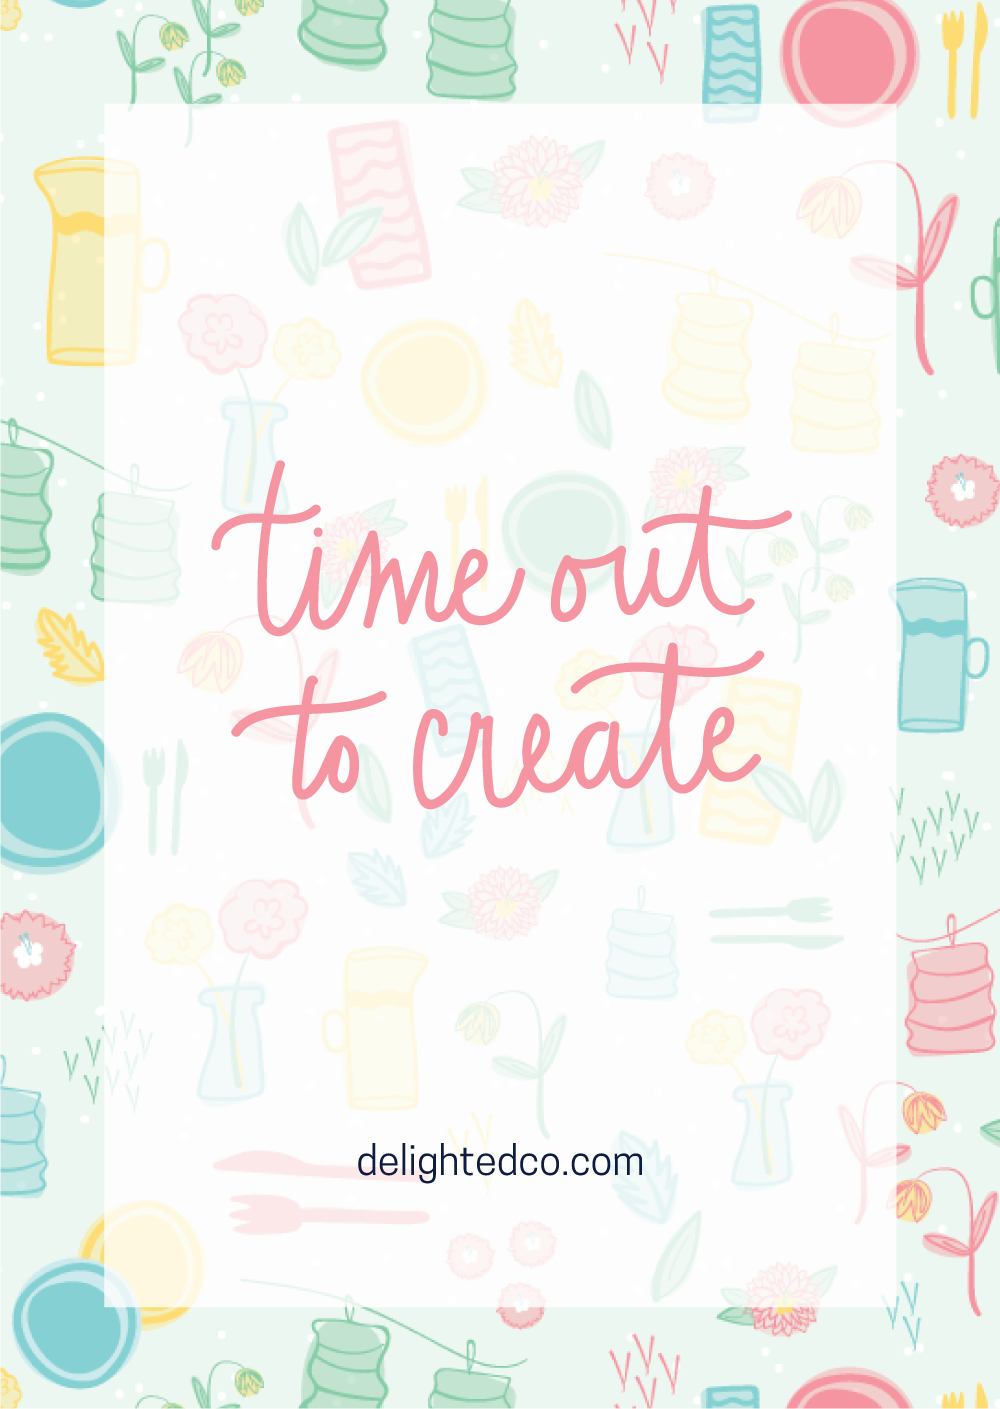 DelightedCo-Time-for-Creating.png